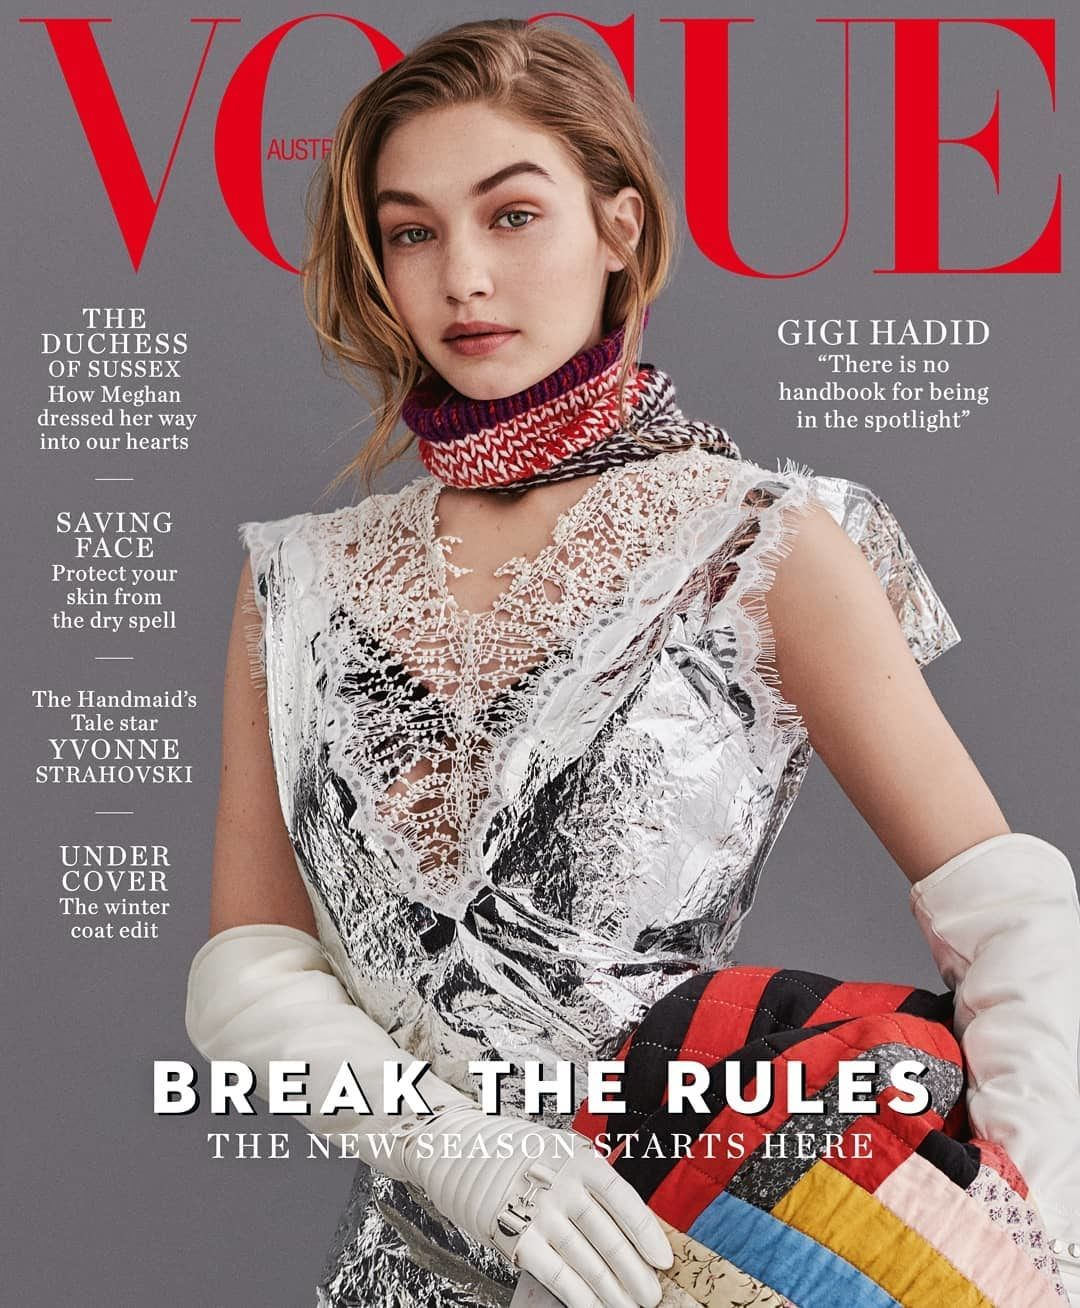 Every Gigi Hadid Vogue Cover All In One Place With